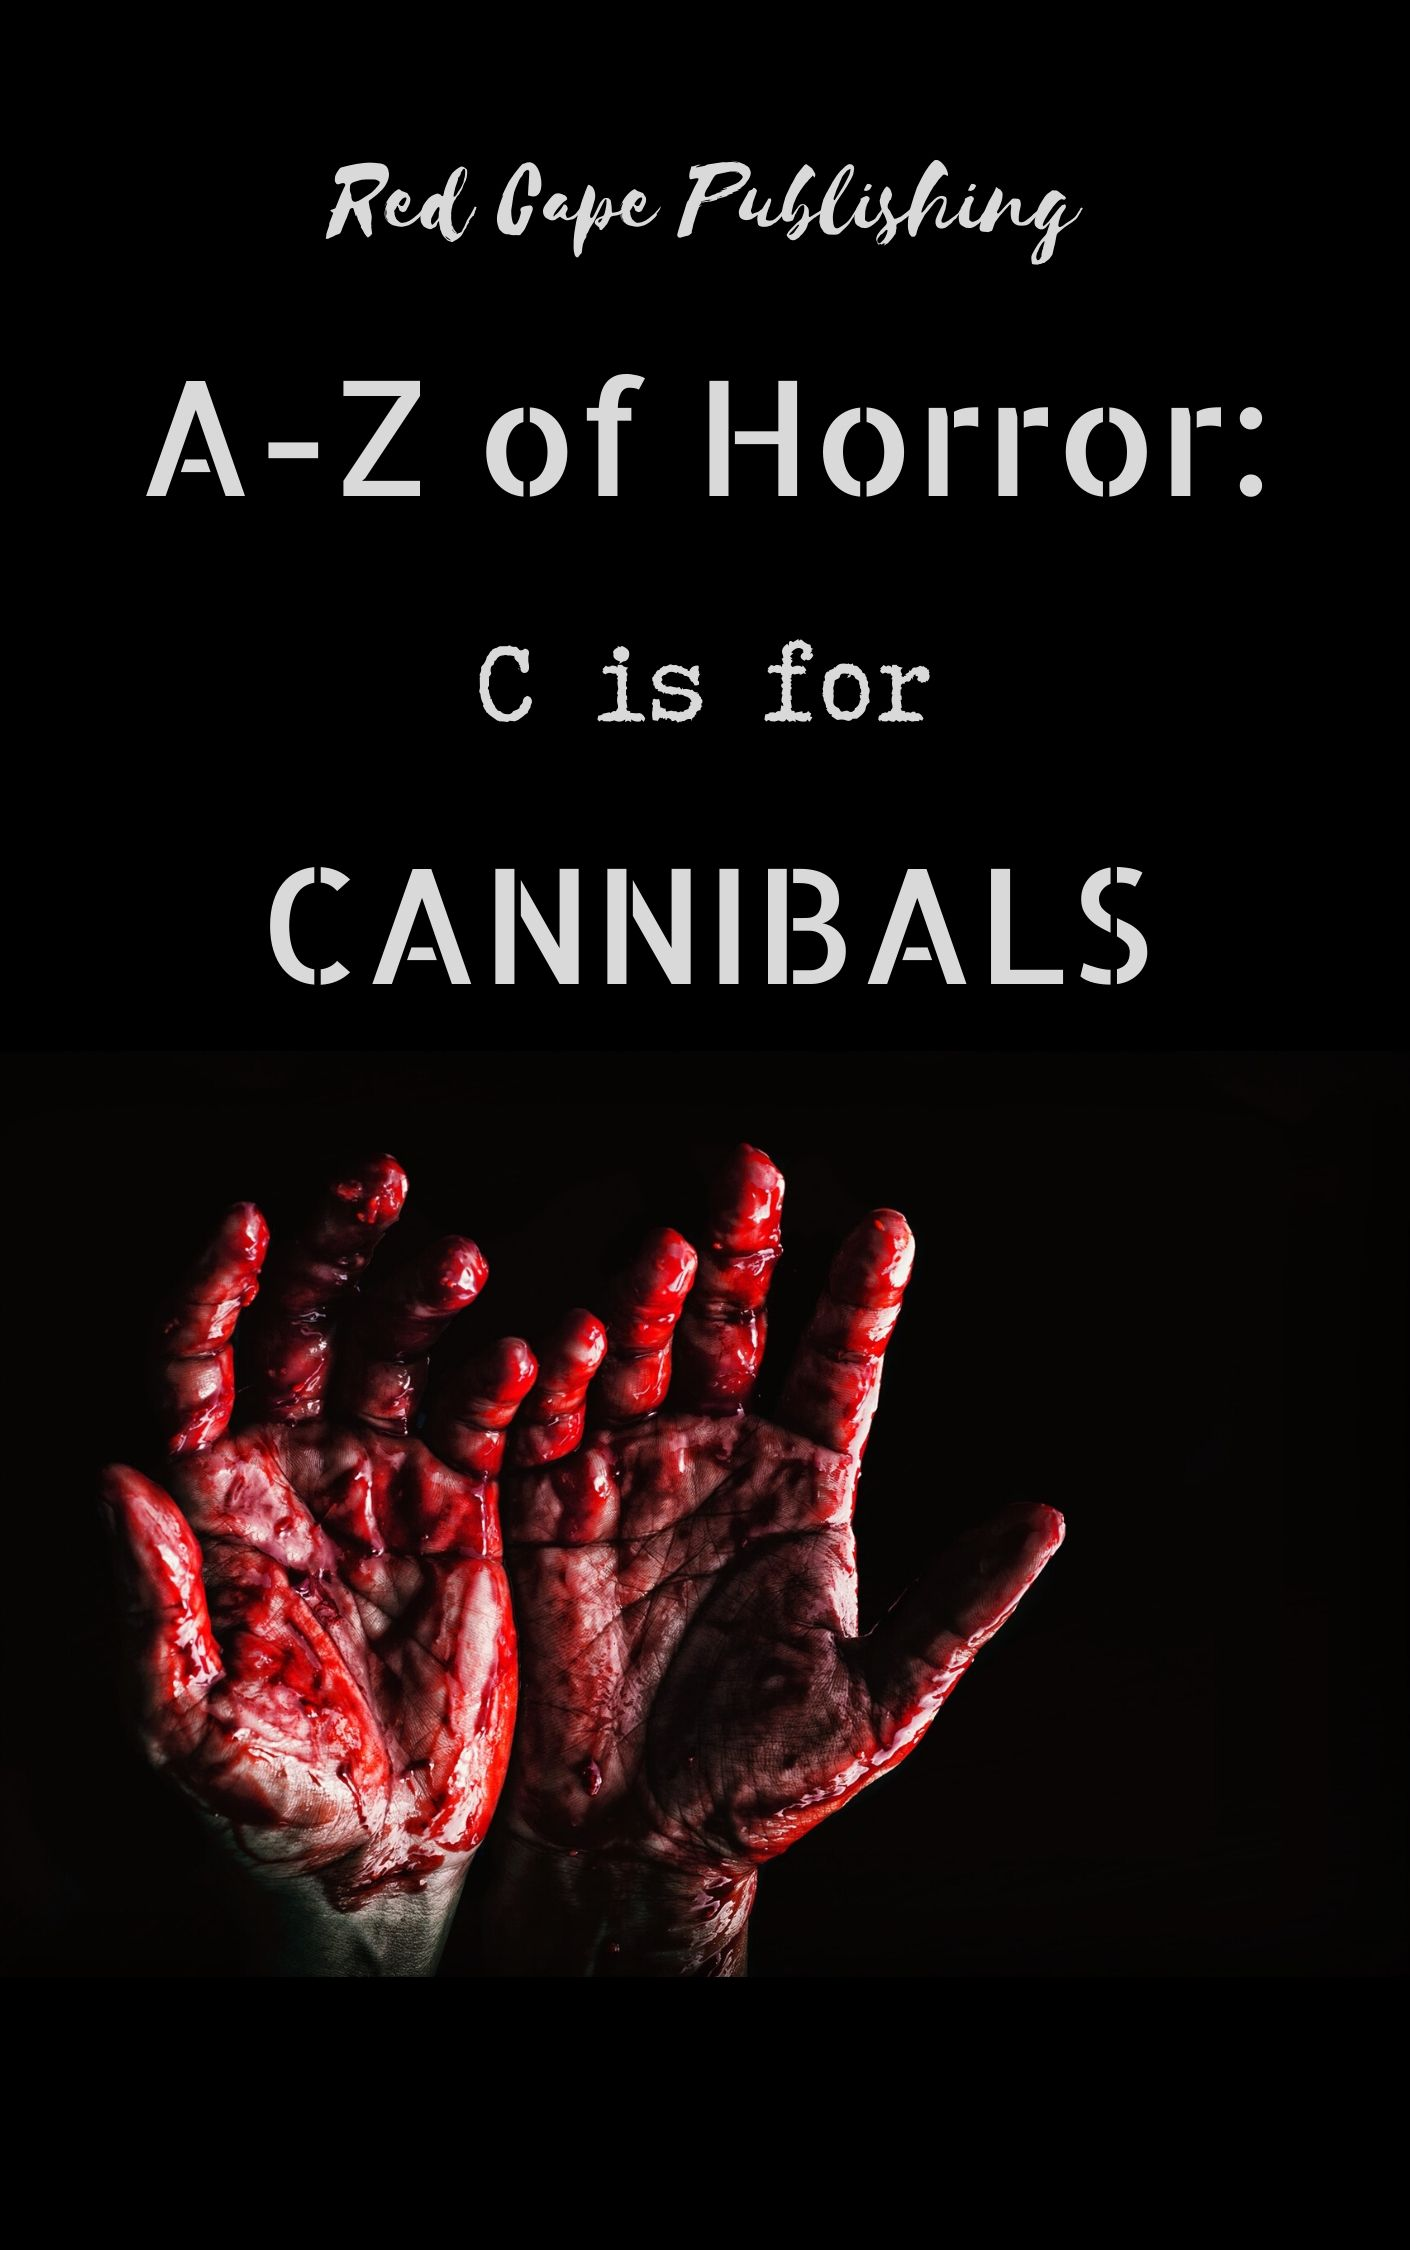 RED CAPE PUBLISHING TO RELEASE THE THIRD BOOK IN THE A-Z OF HORROR ANTHOLOGY SERIES 'C IS FOR CANNIBALS'